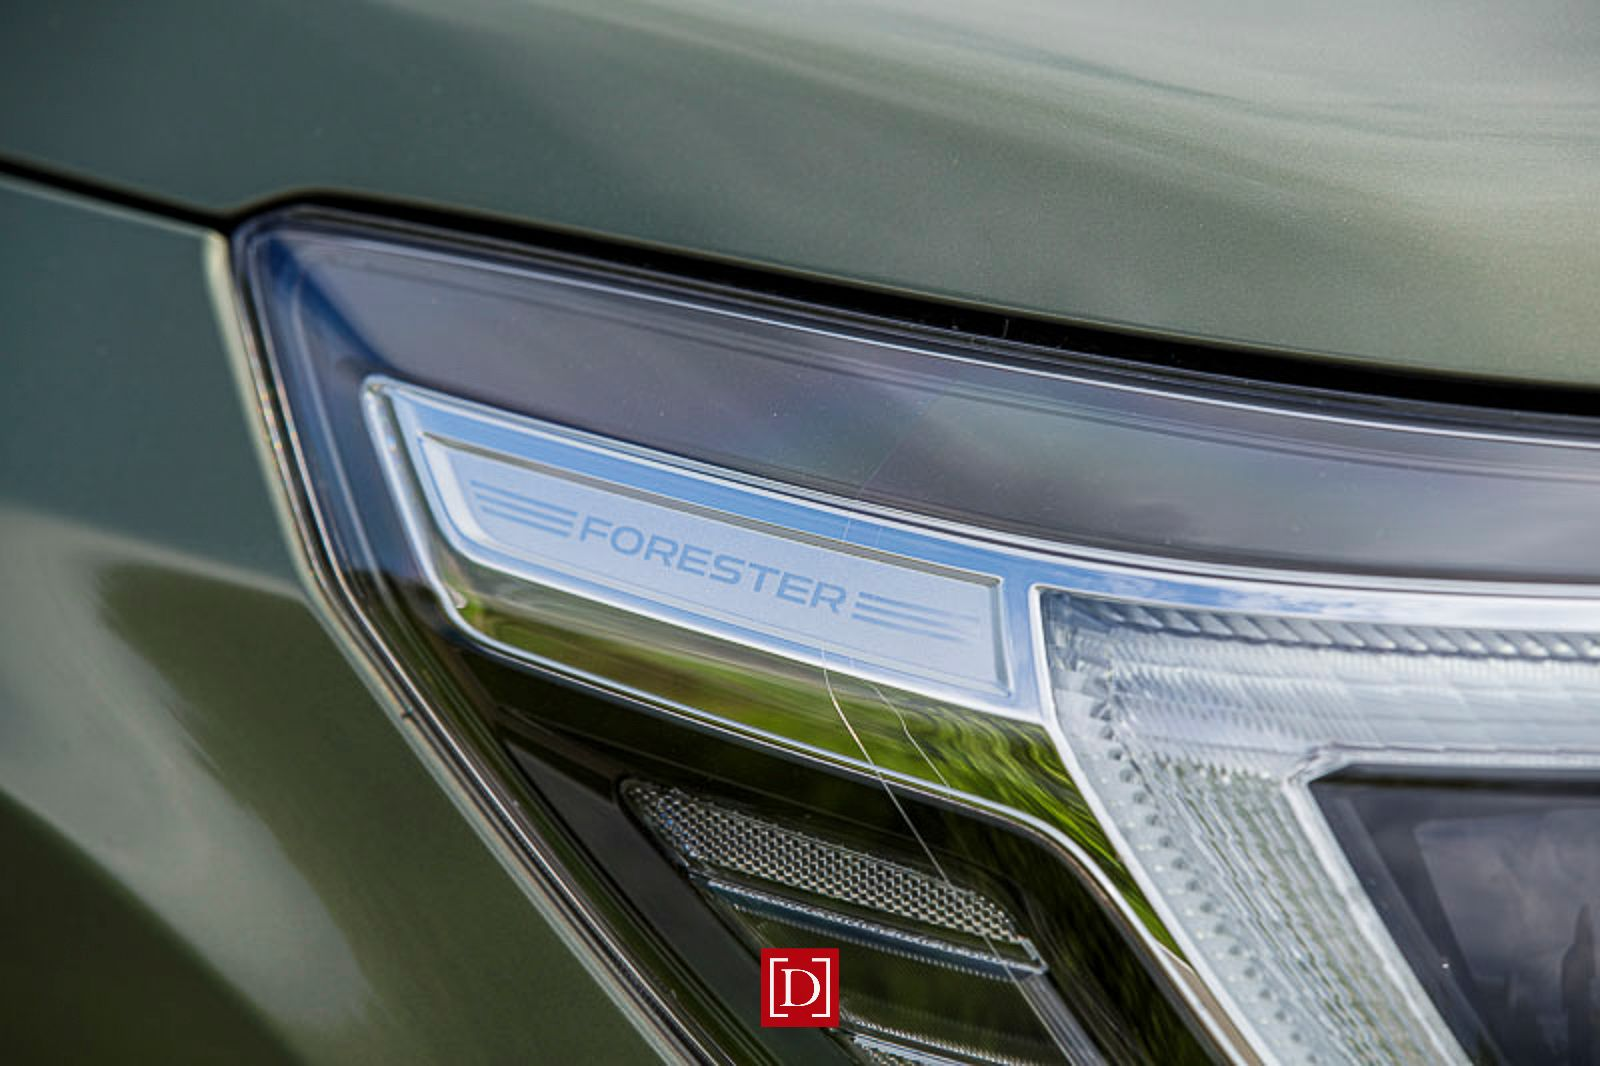 forester-e-boxer_low-010-22645